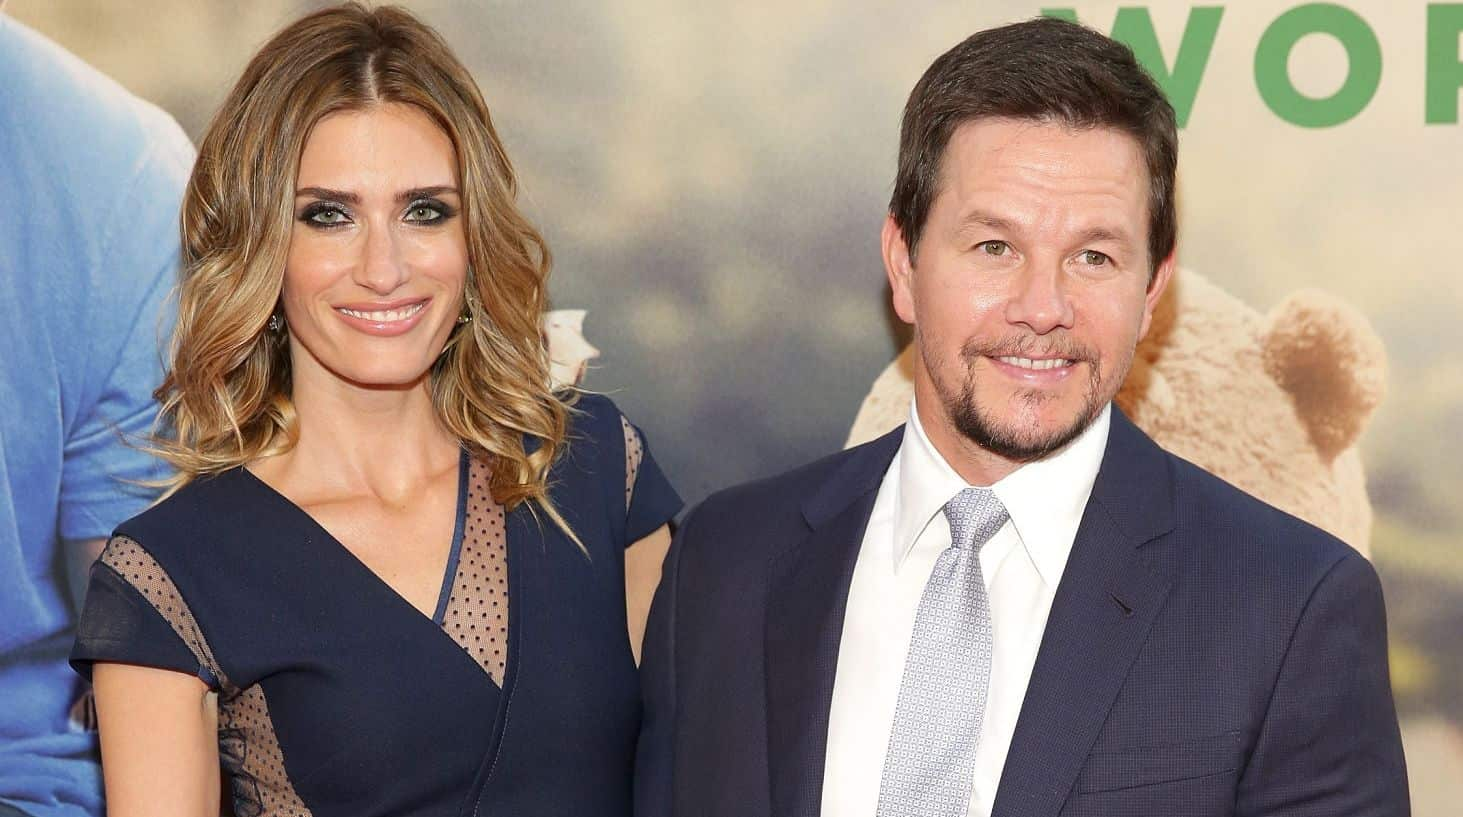 mark-wahlberg-pays-sweet-tribute-to-wife-rhea-durham-on-their-11th-wedding-anniversary-and-fans-wish-they-were-her